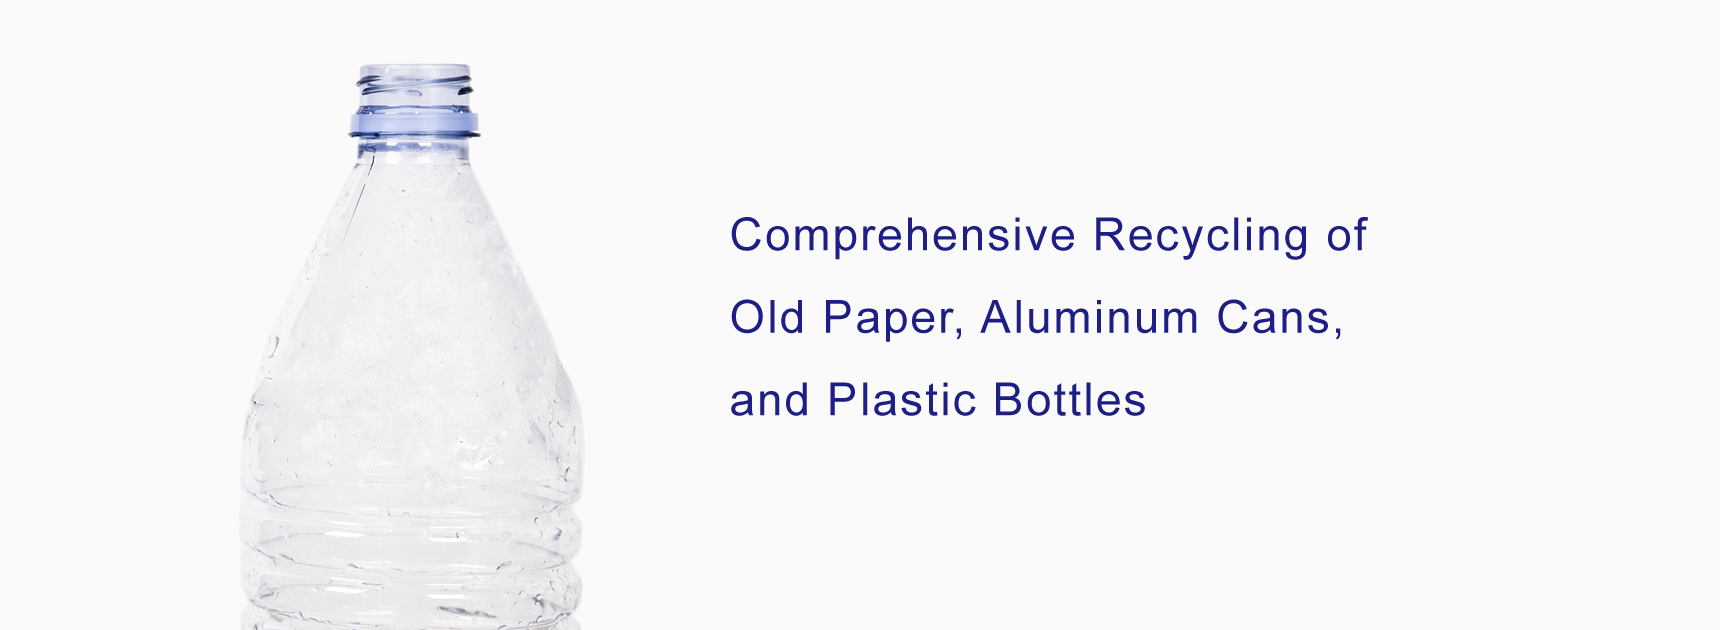 Comprehensive Recycling of Old Paper, Aluminum Cans, and Plastic Bottles